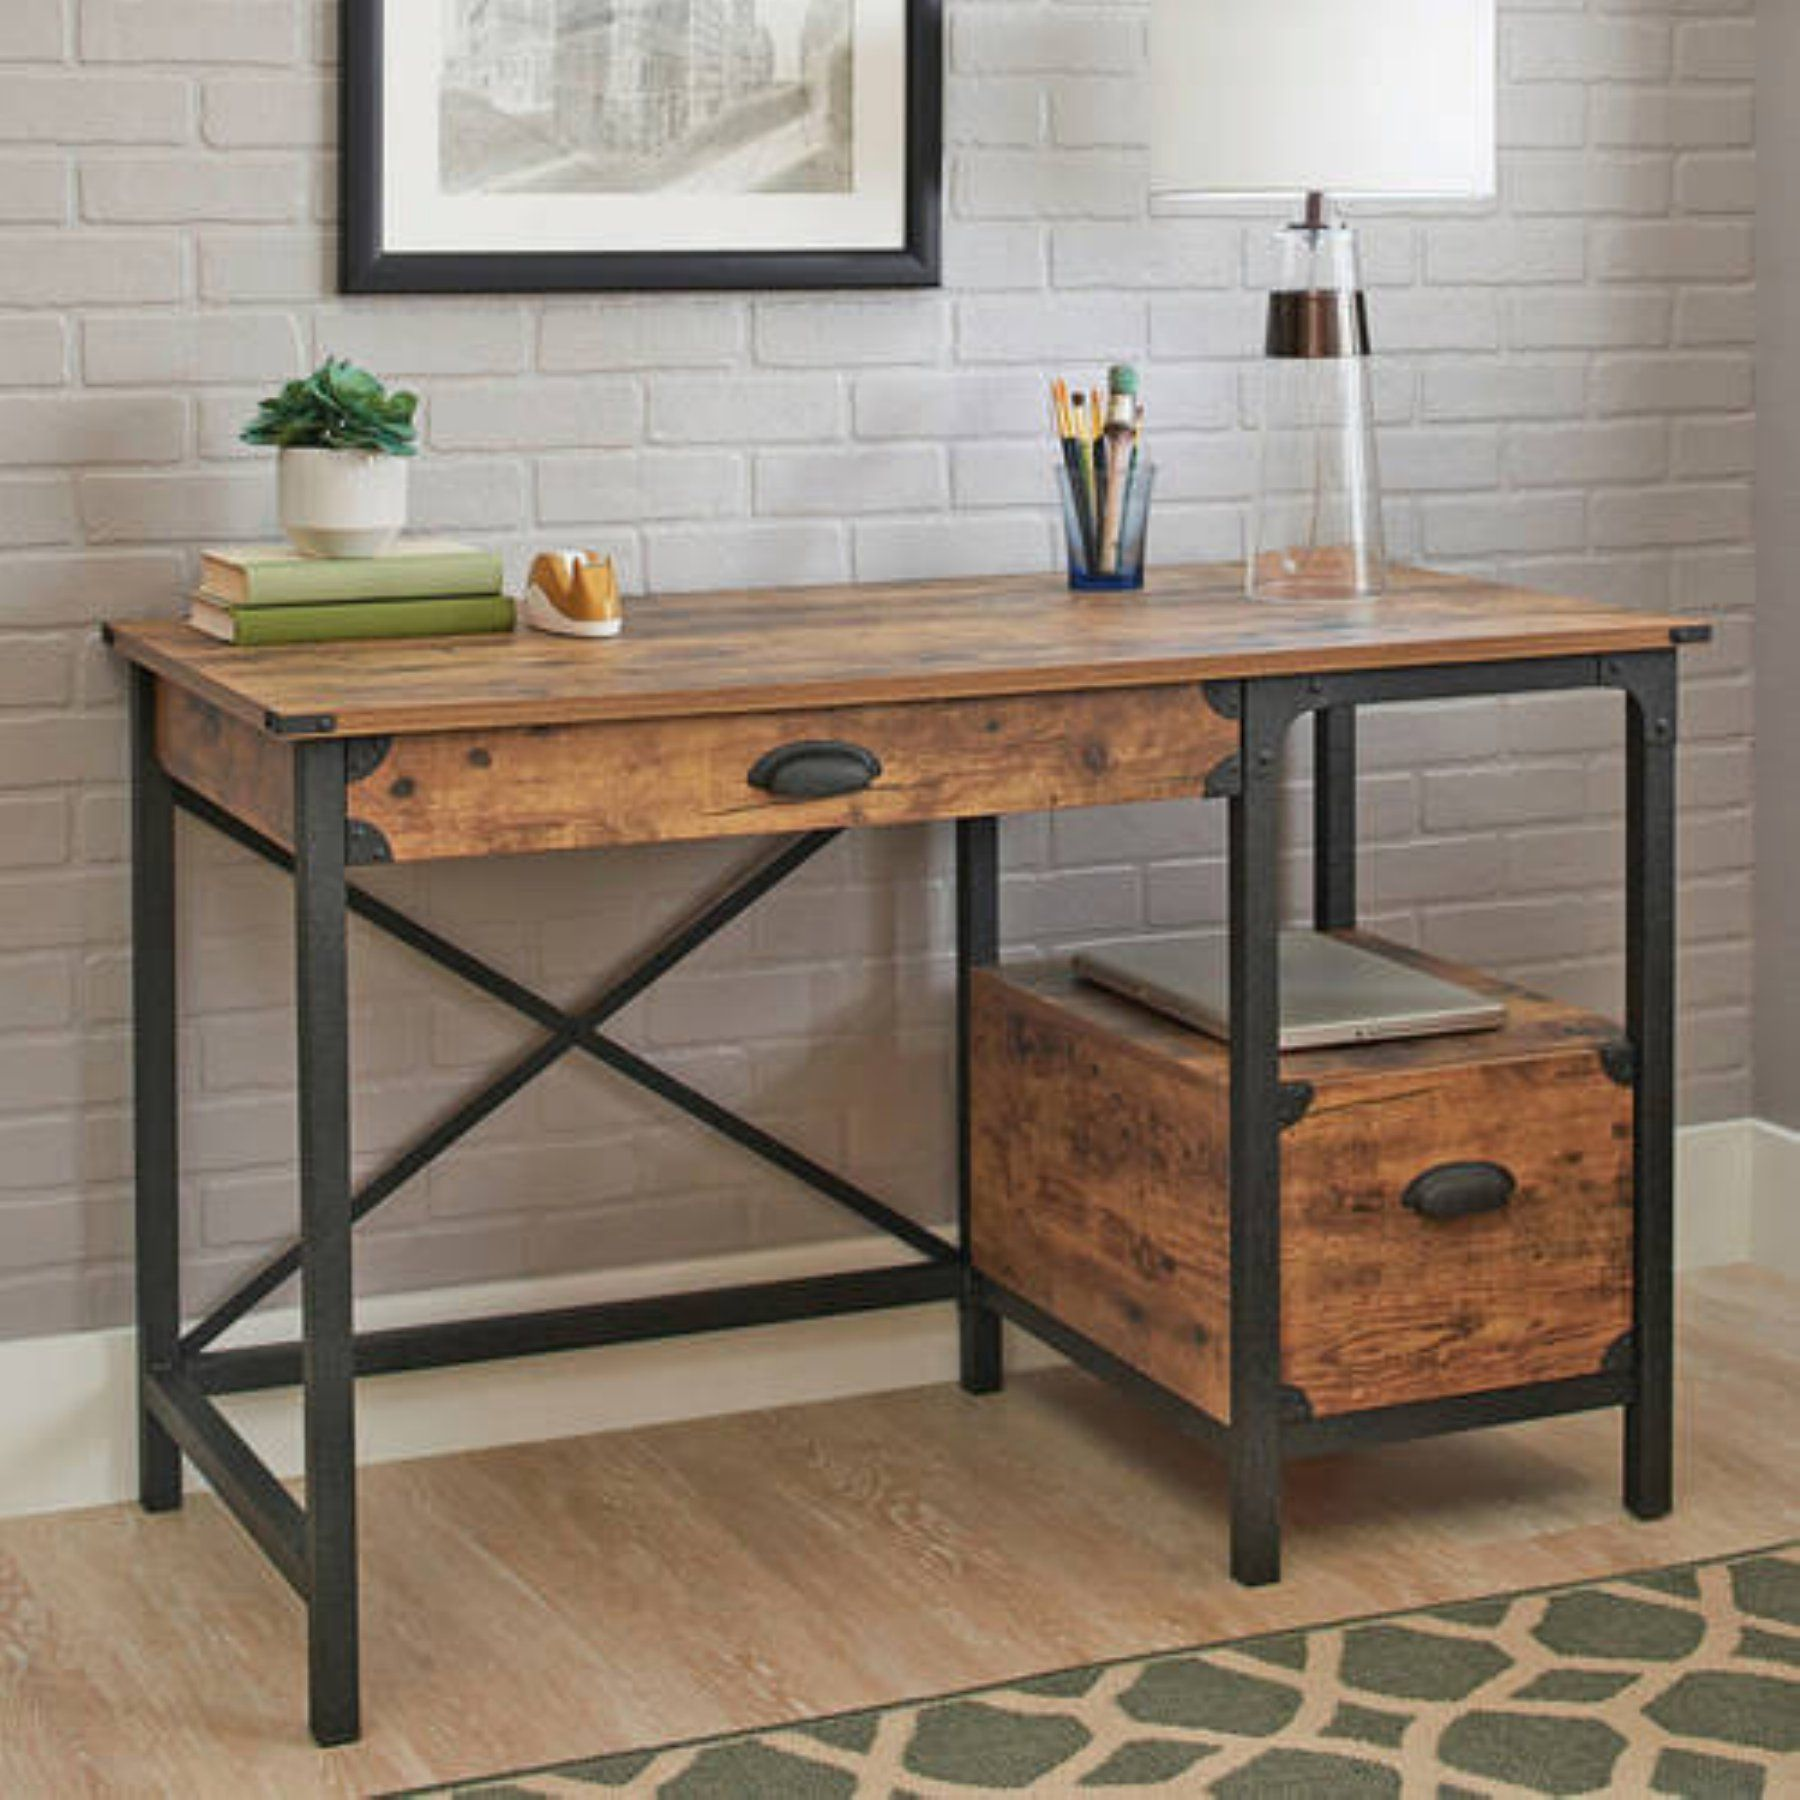 Better Homes & Gardens Rustic Country Desk Country desk